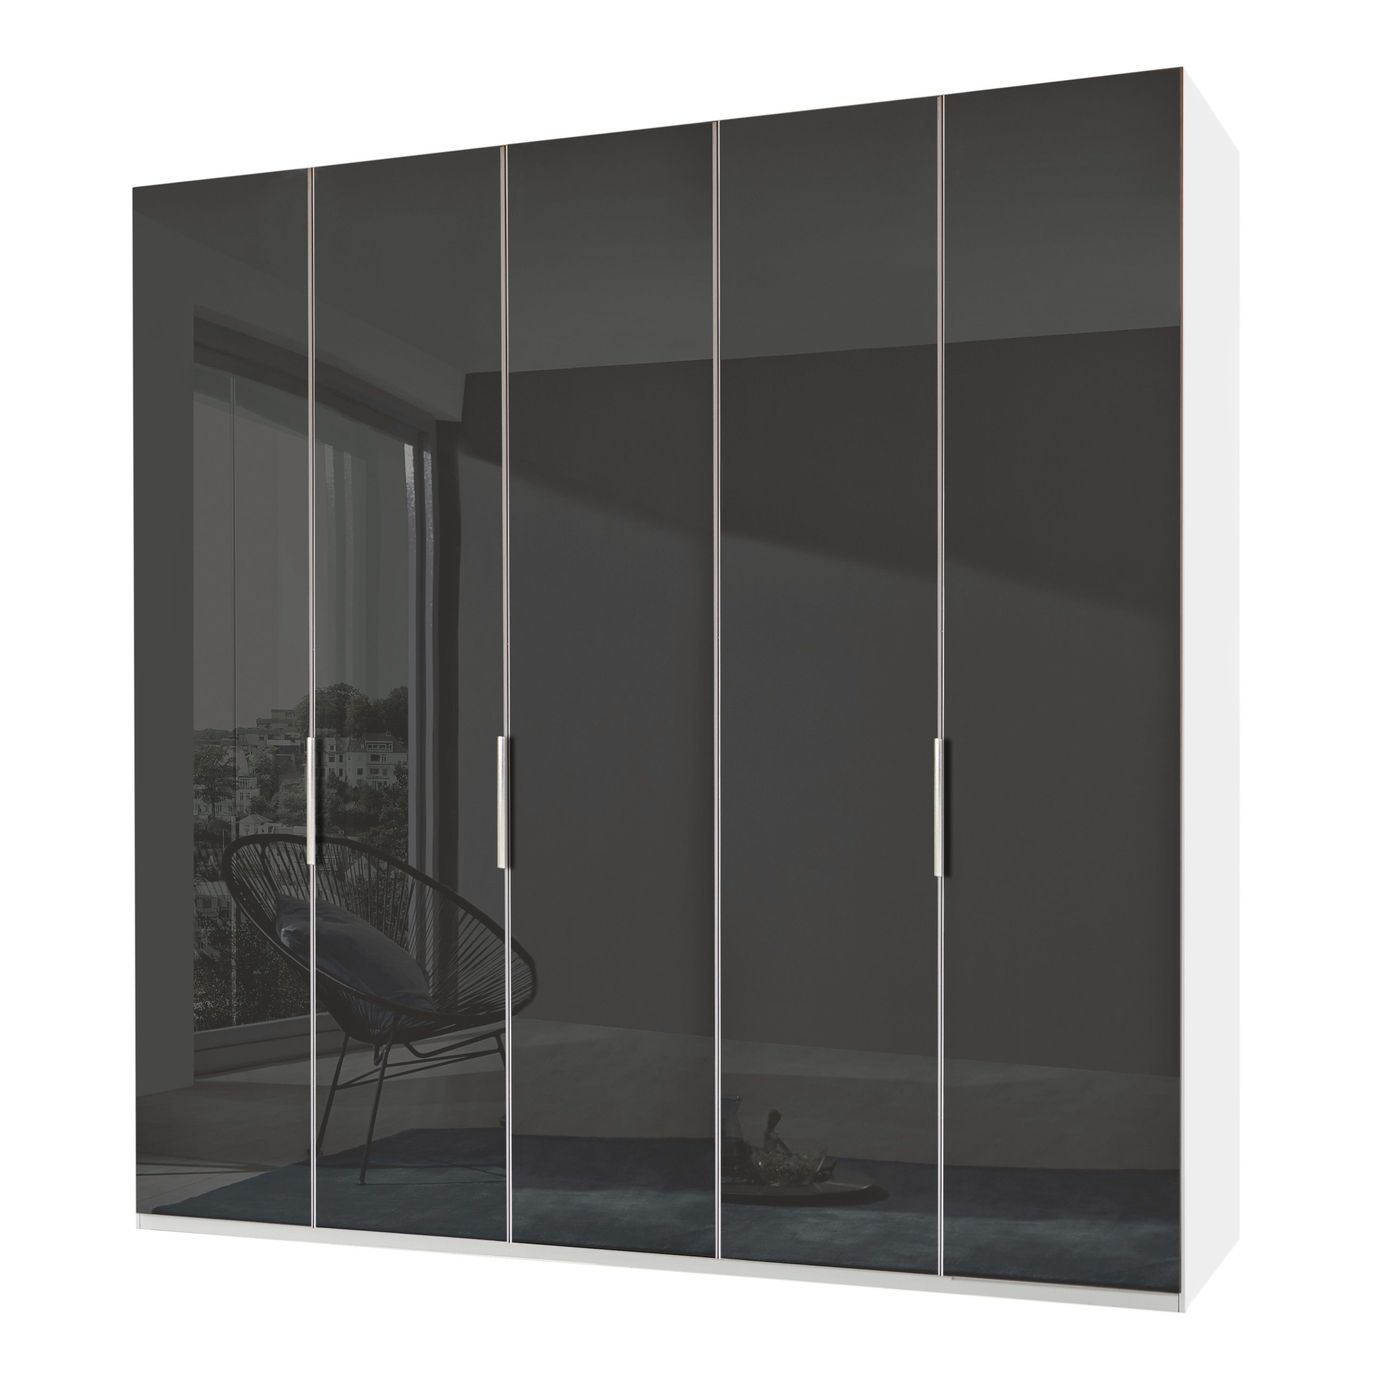 glasfront crushed ice khlschrank authentic khlschrank blendend khlschrank glasfront kuhlschrank. Black Bedroom Furniture Sets. Home Design Ideas